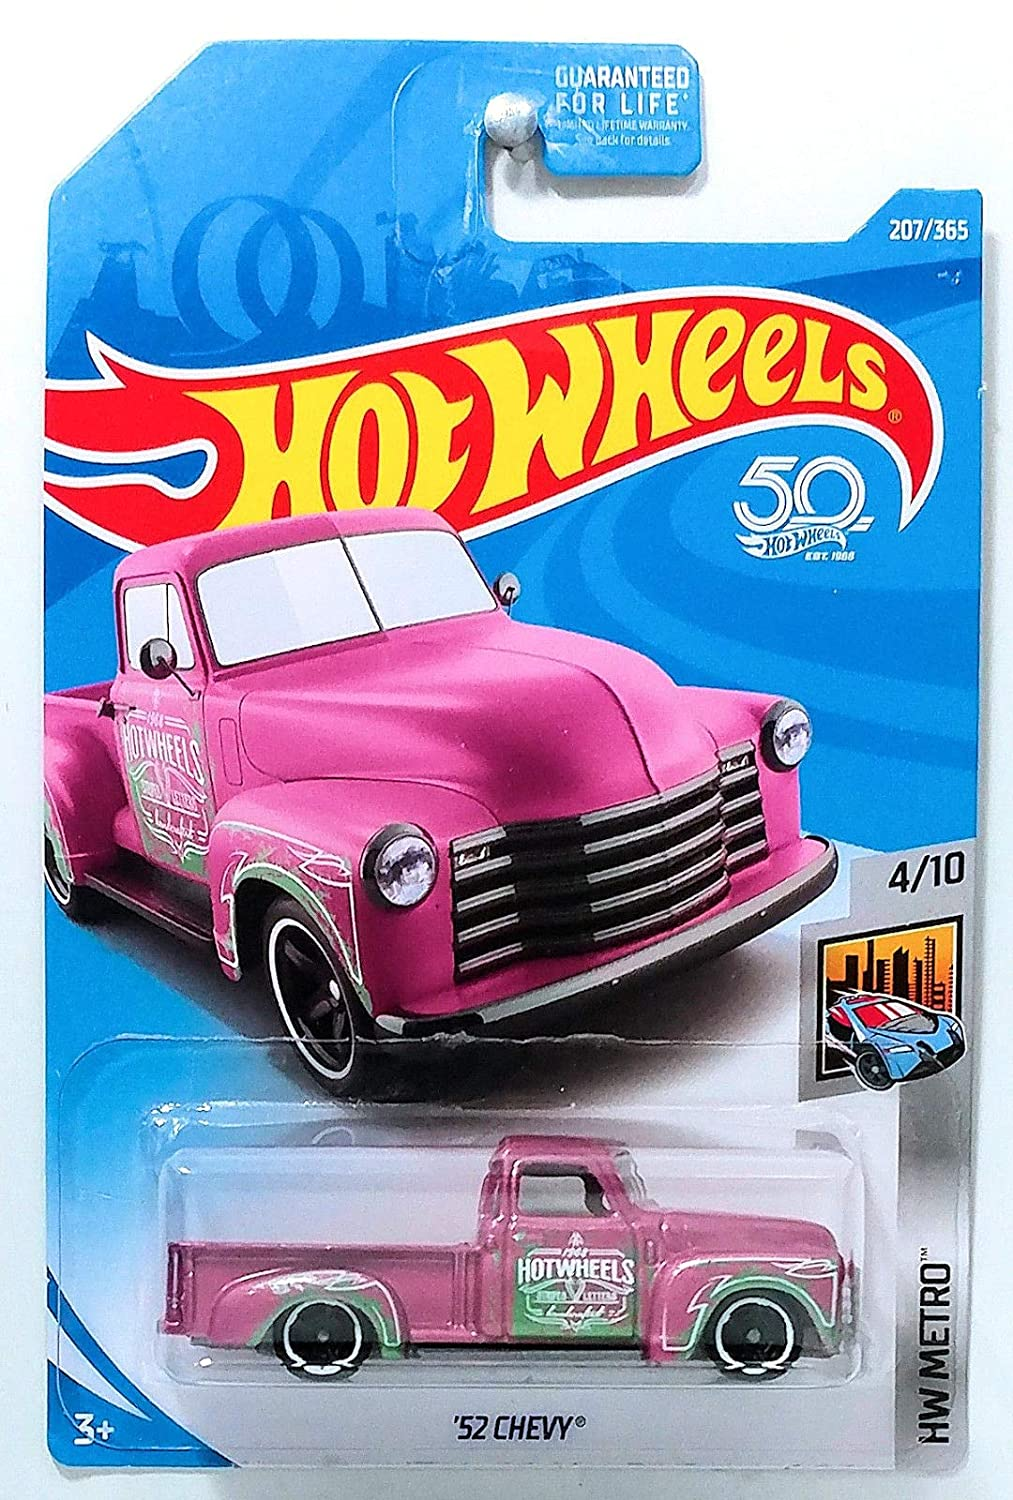 Hot Wheels 2018 '52 Chevy HW Metro Pink 207/365, Long Card by Mattel